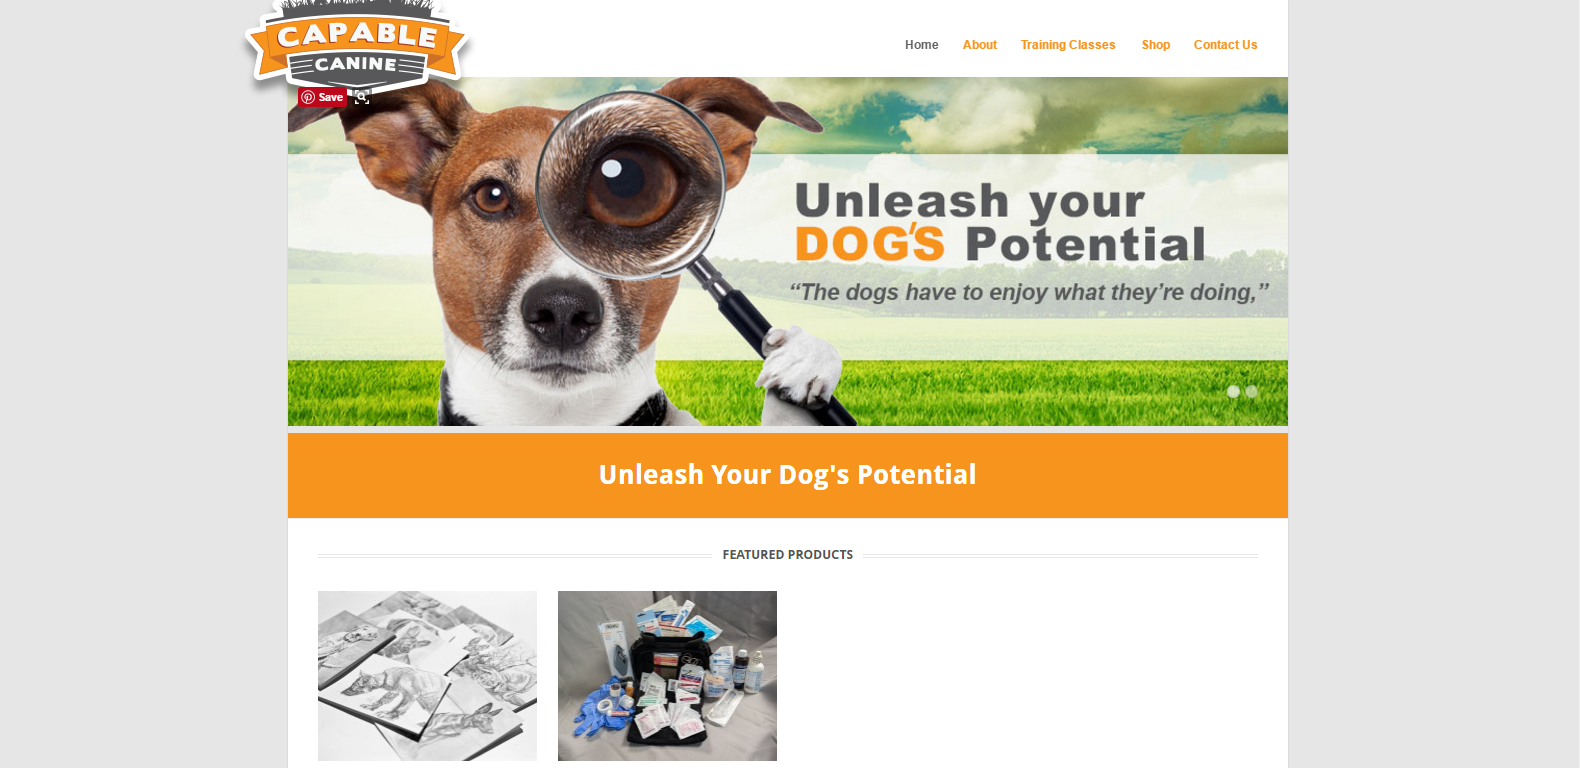 Capable Canine's Updated Website Home Page